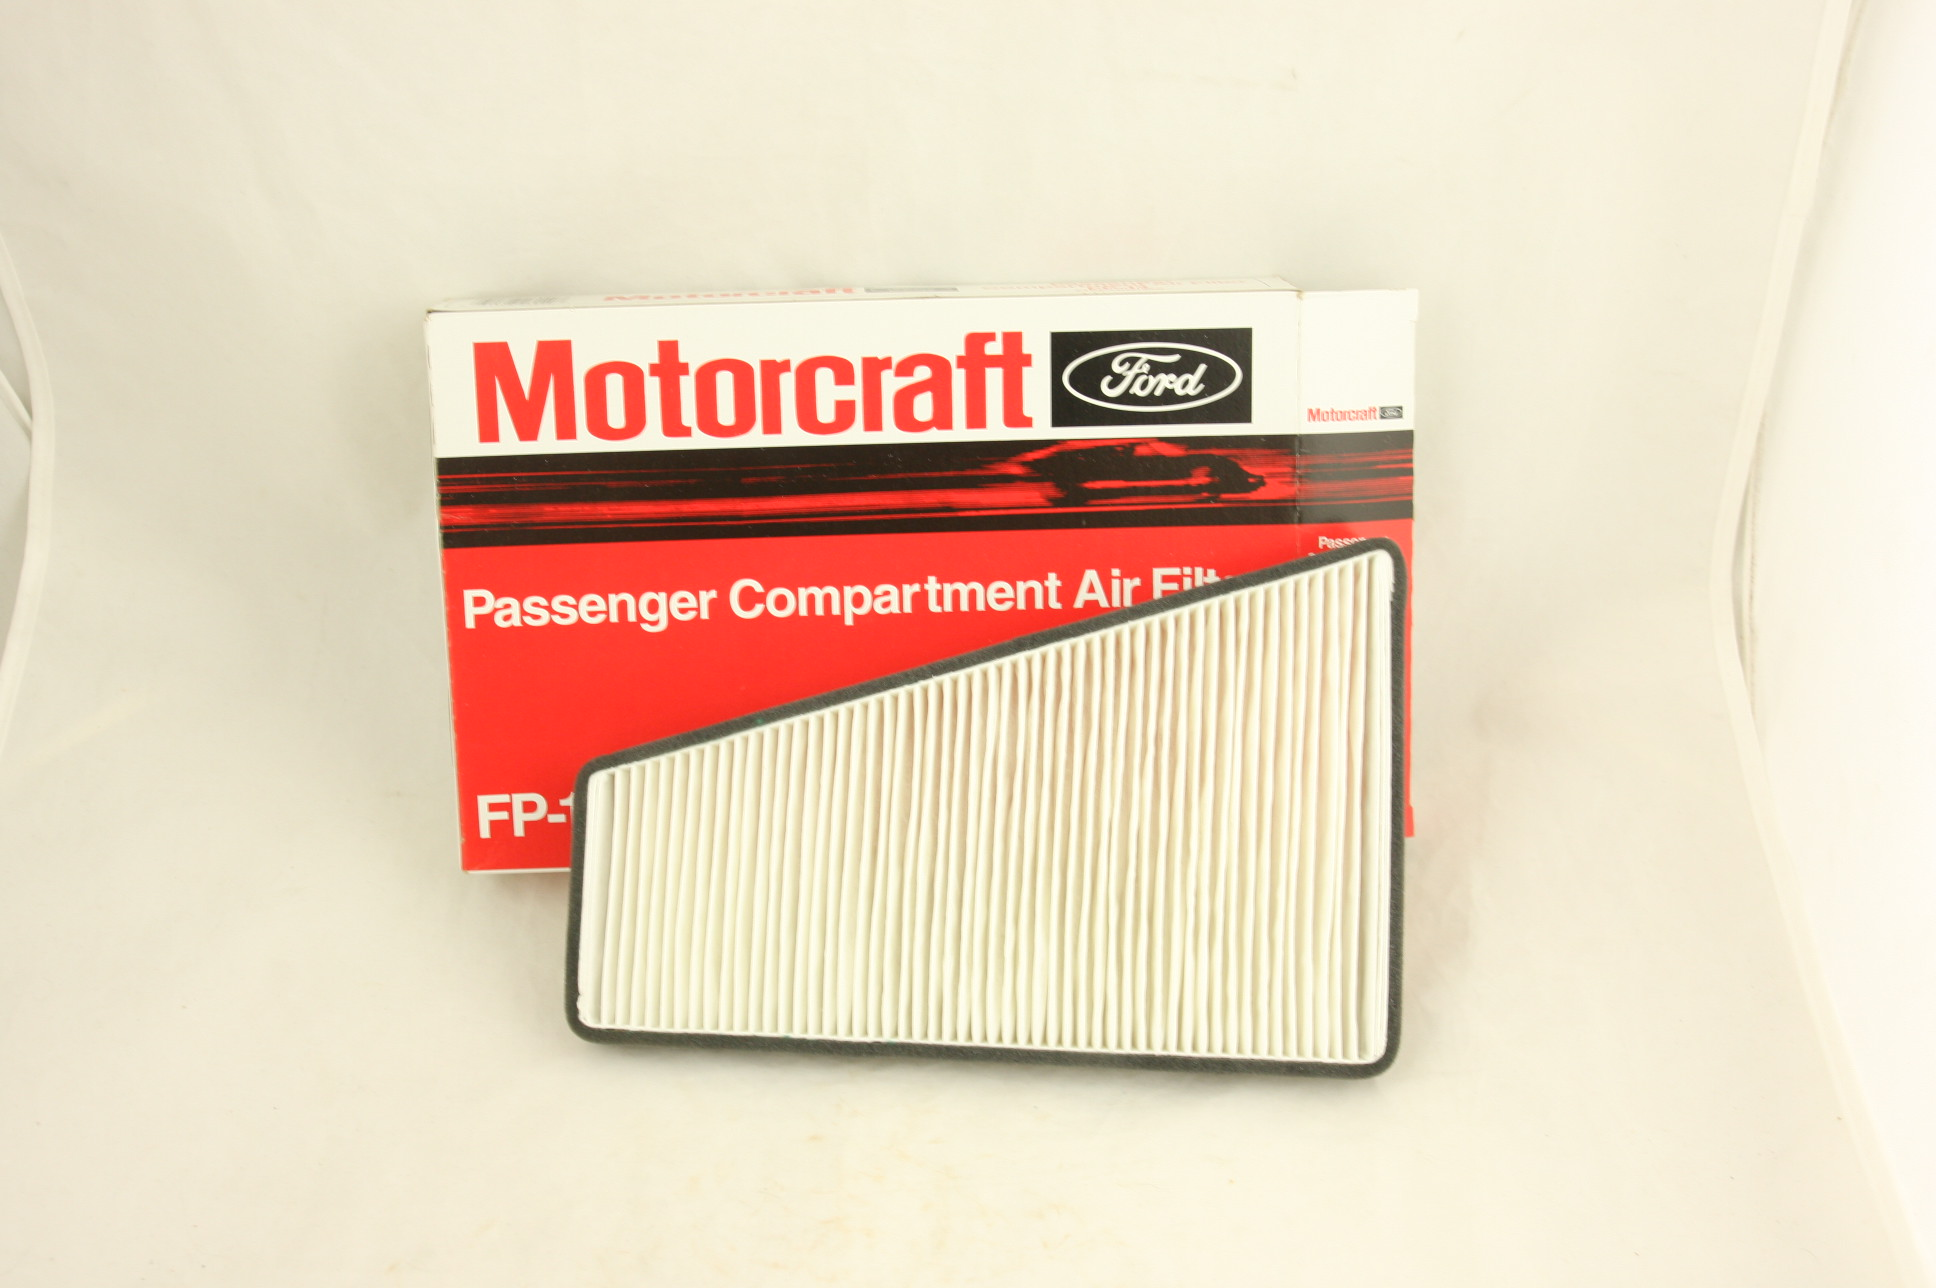 *** New OEM Motorcraft FP14 Ford F7DZ19N619AB Pollen Cabin Filter Free Shipping - image 4